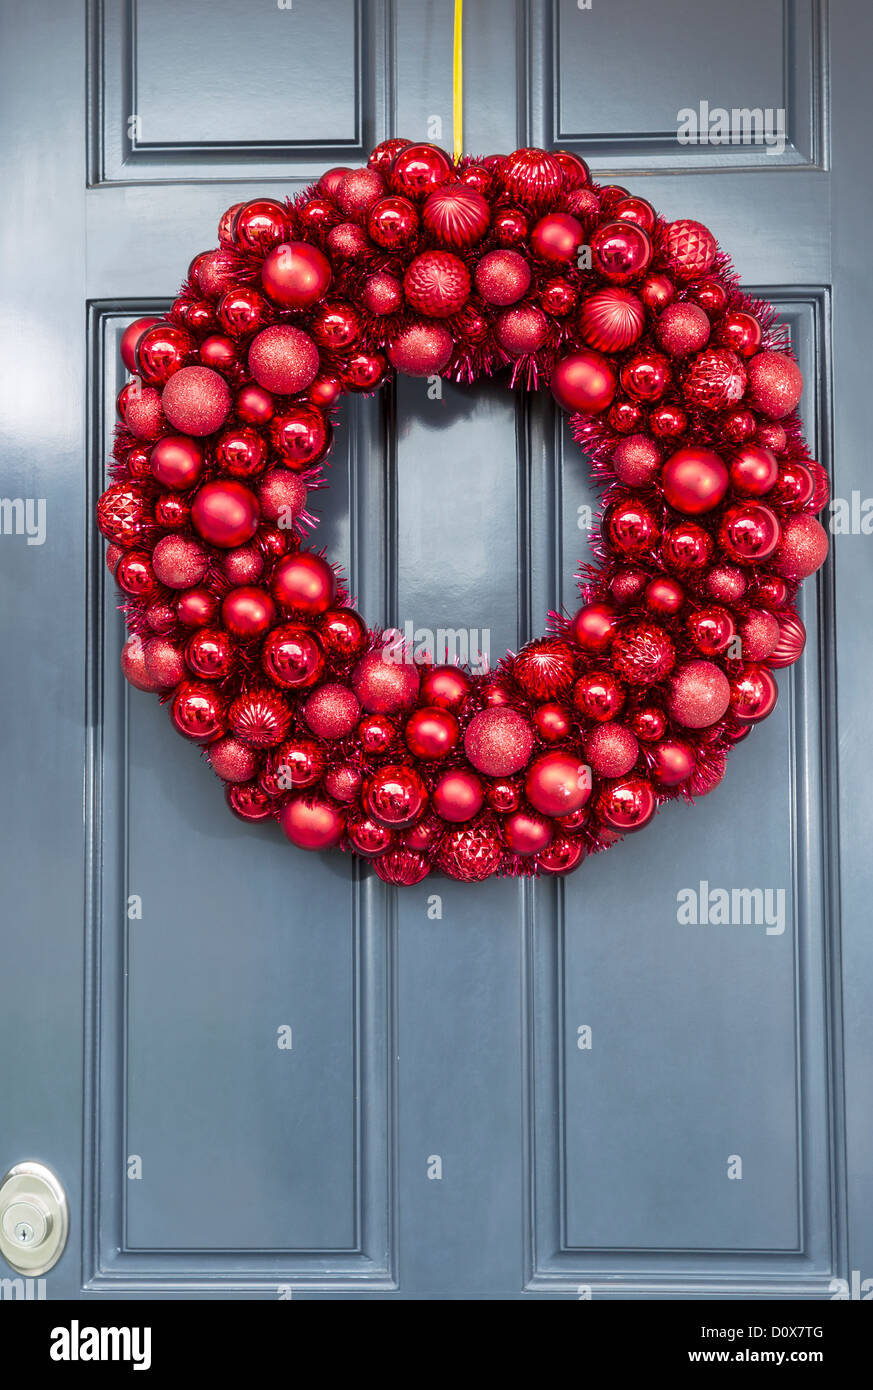 Outside ornaments - Red Ball Ornaments Wreath Hanging On Outside Of House Door For Holidays